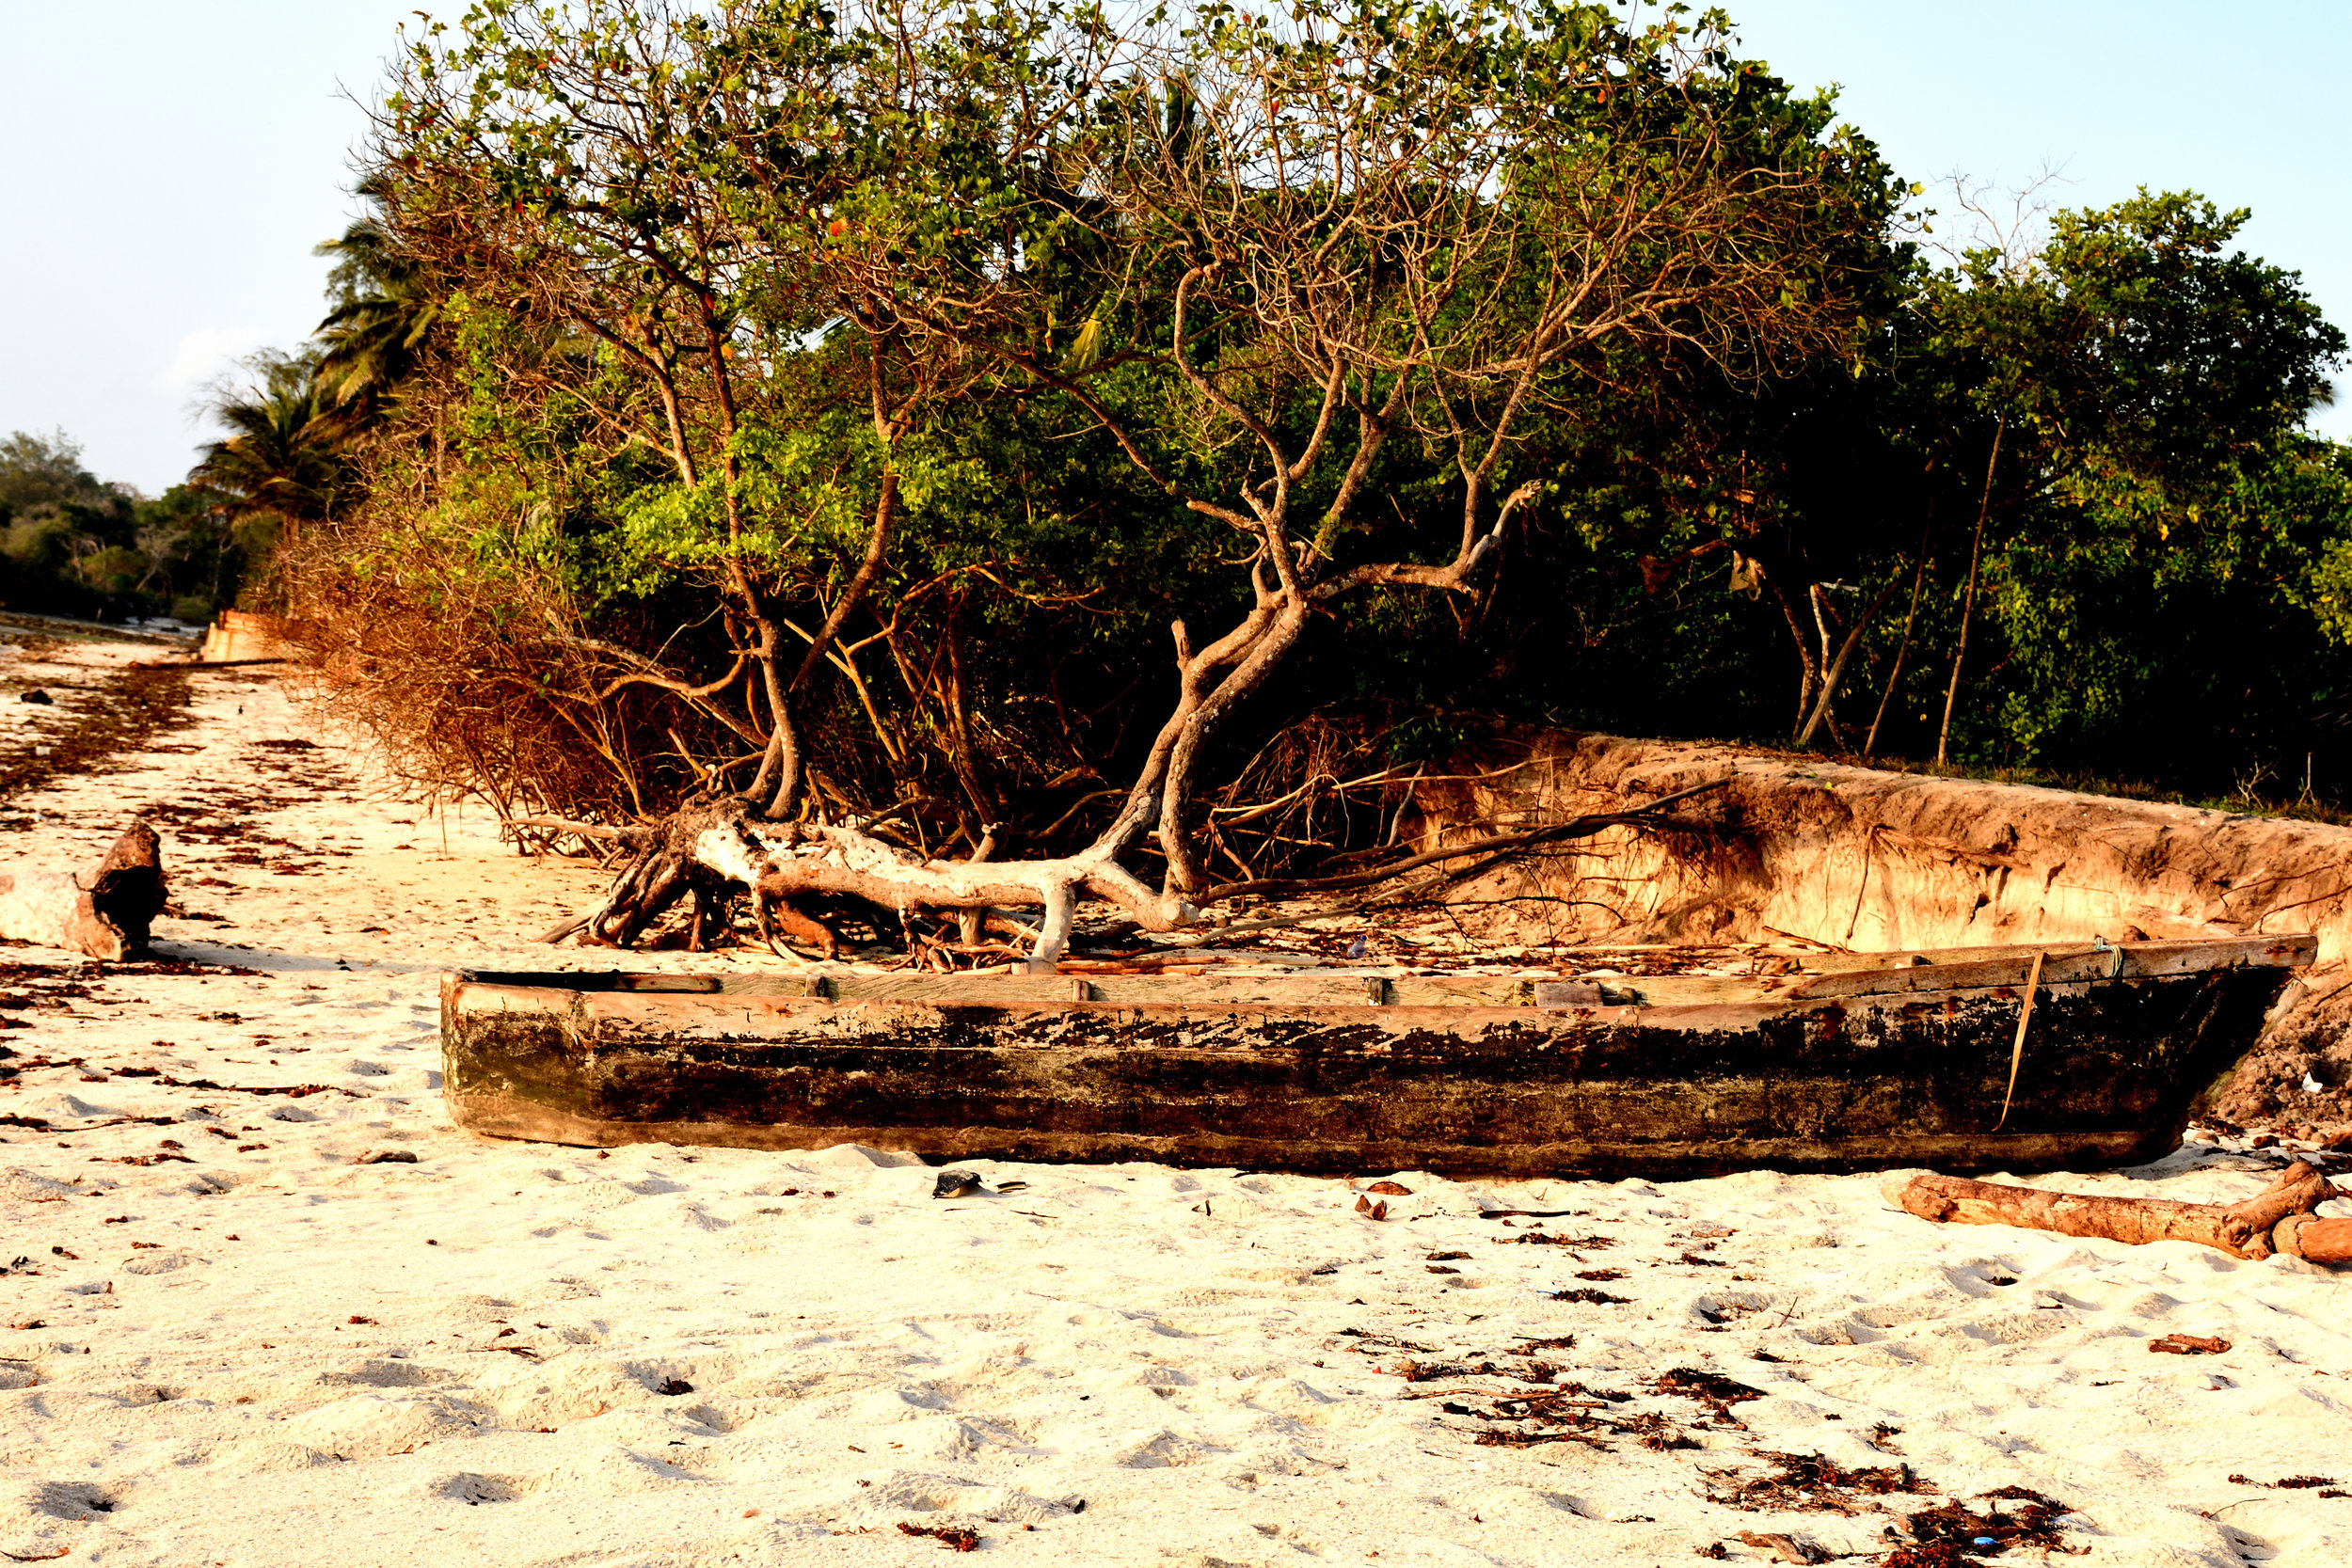 Kindondo Kwetue, Diani Beach, Kenya, October 2017